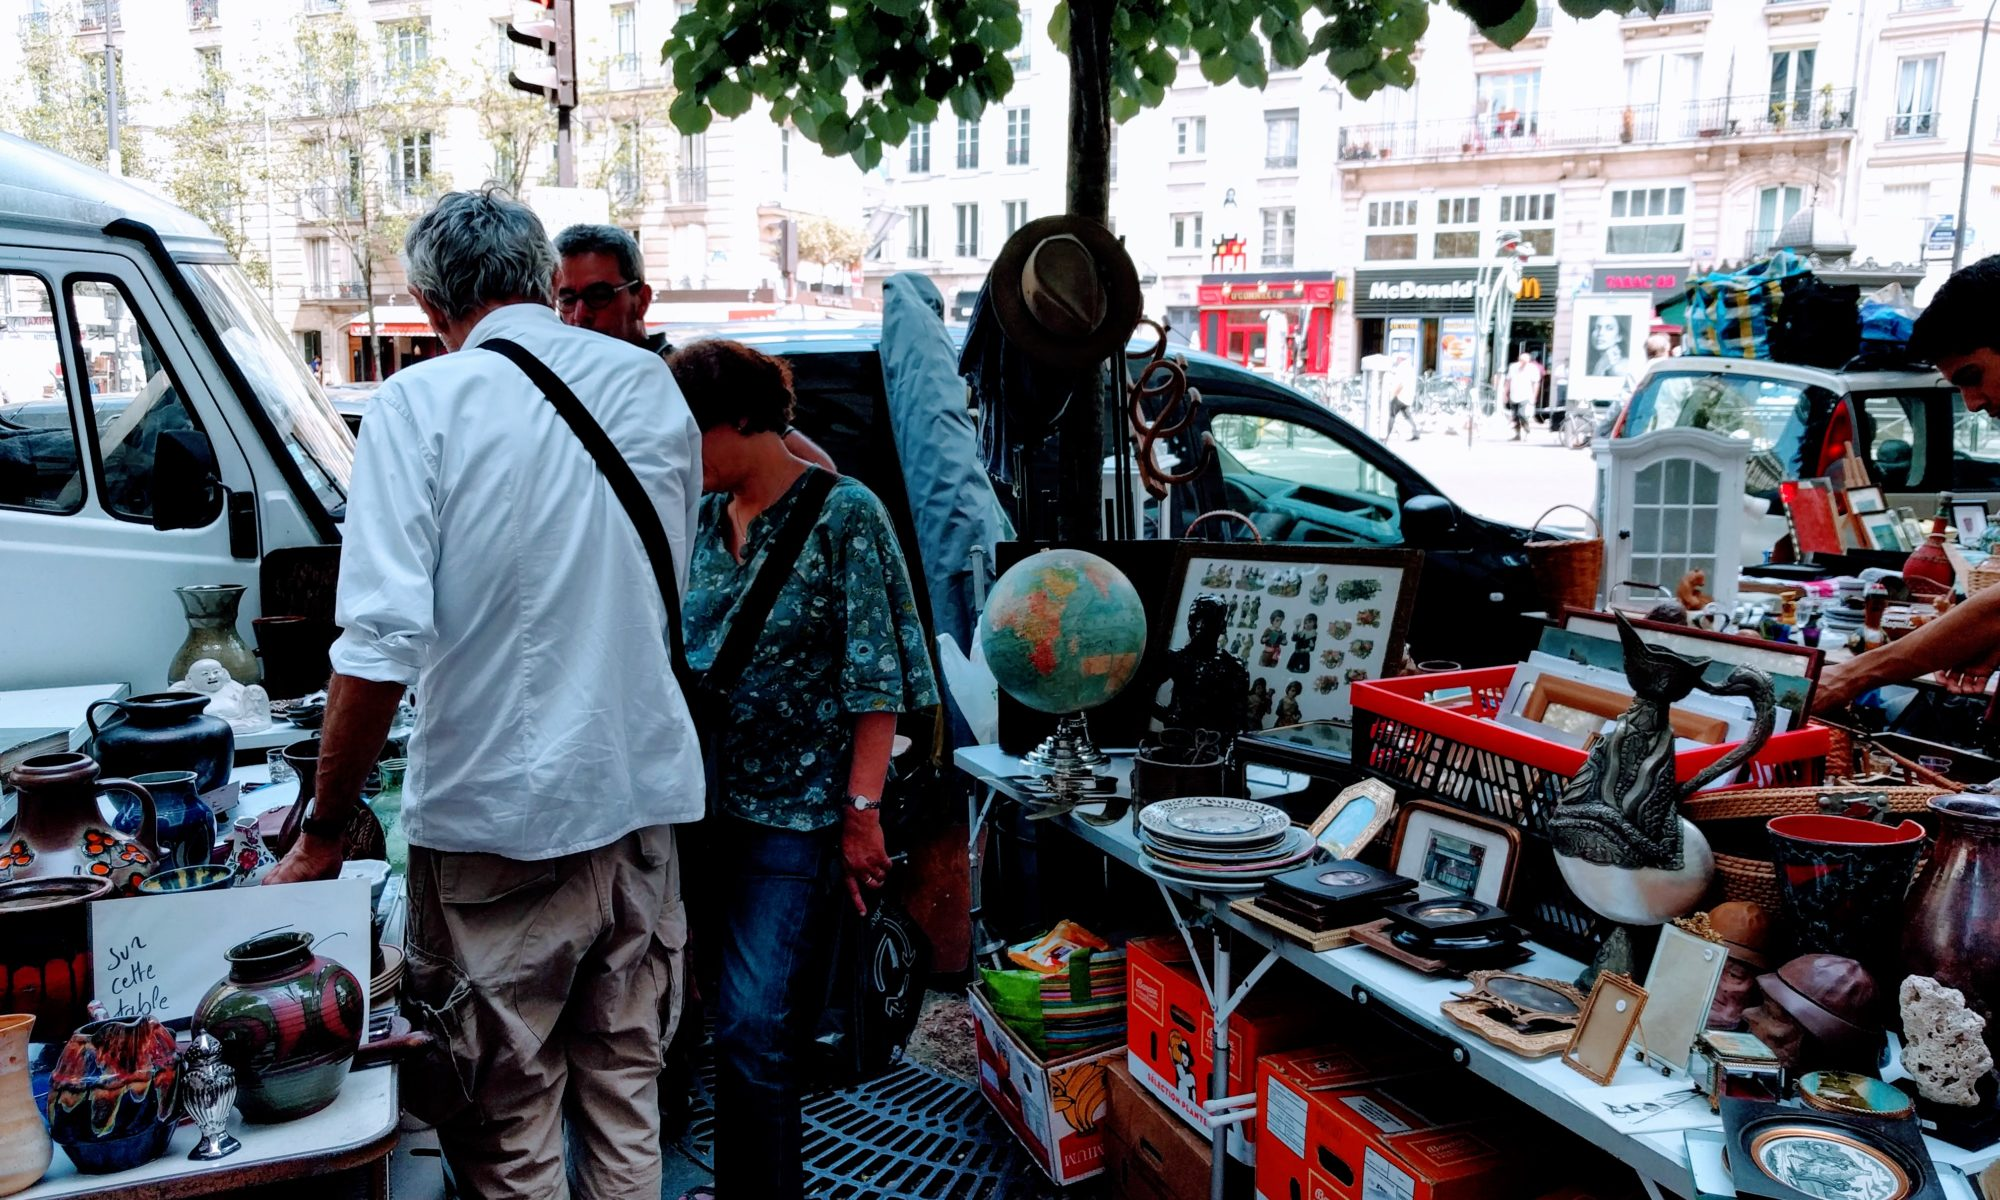 Vide grenier in Paris